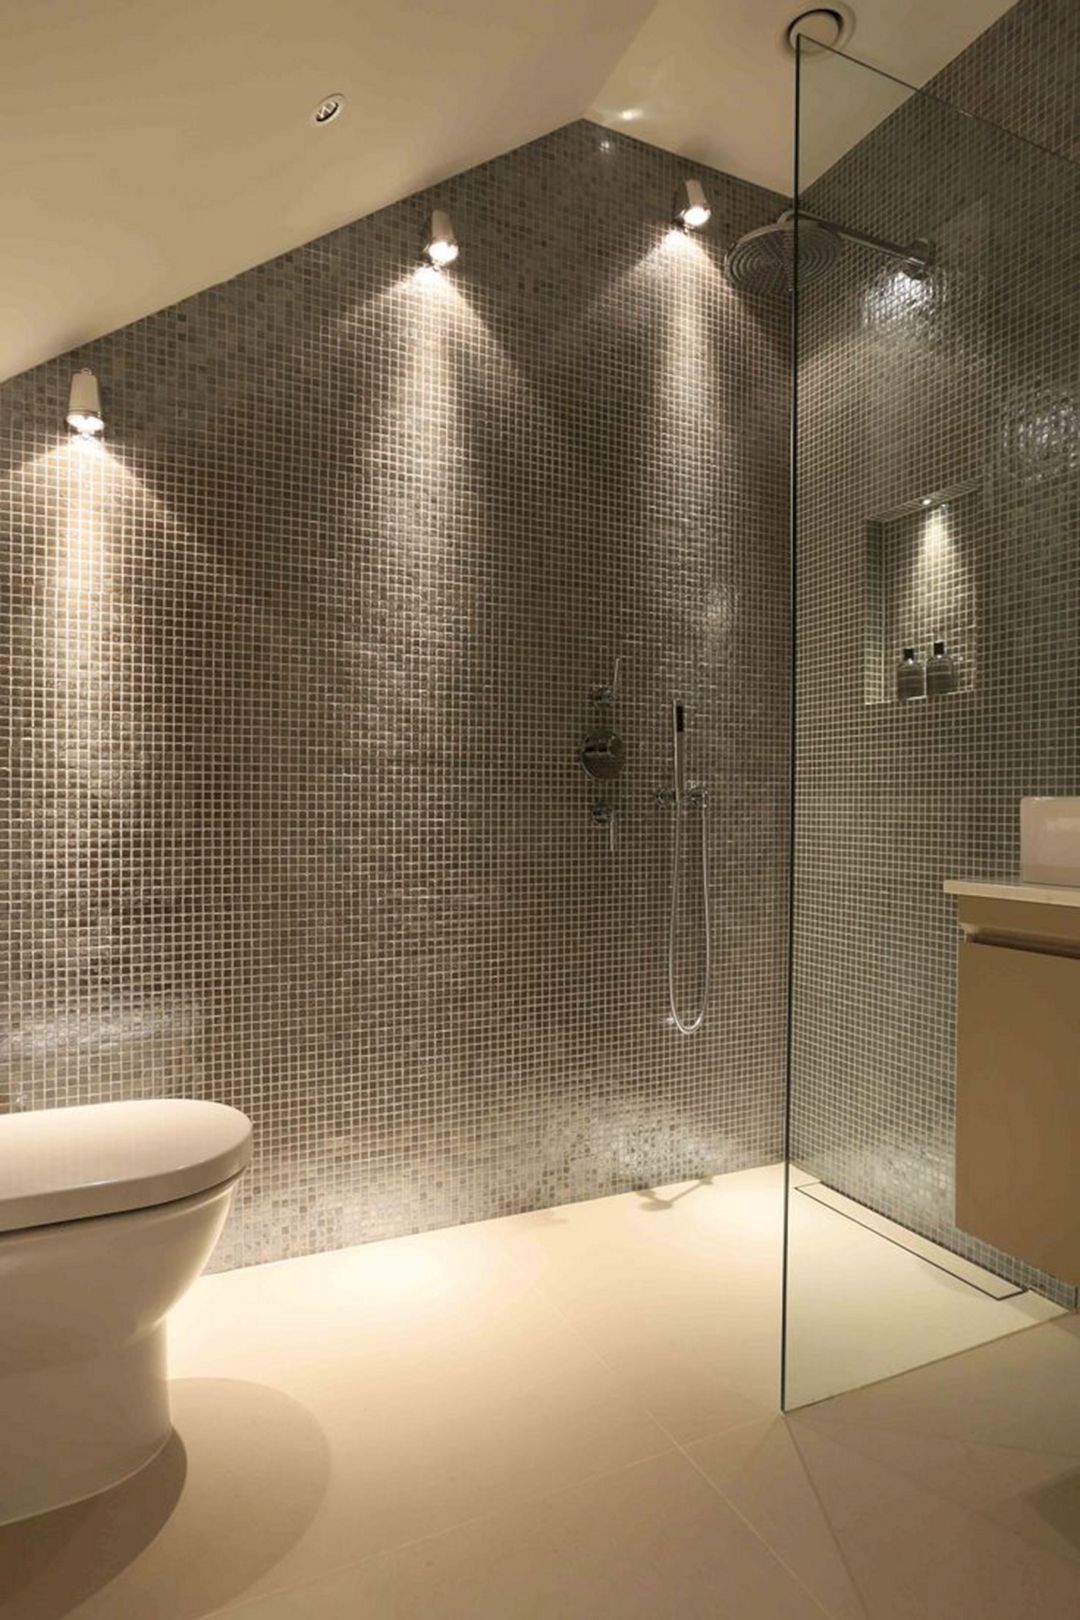 10 Top And Clever Bathroom Shower Lighting Ideas That Inspire Bathroomlampideas Bathrooml Shower Lighting Best Bathroom Lighting Simple Bathroom